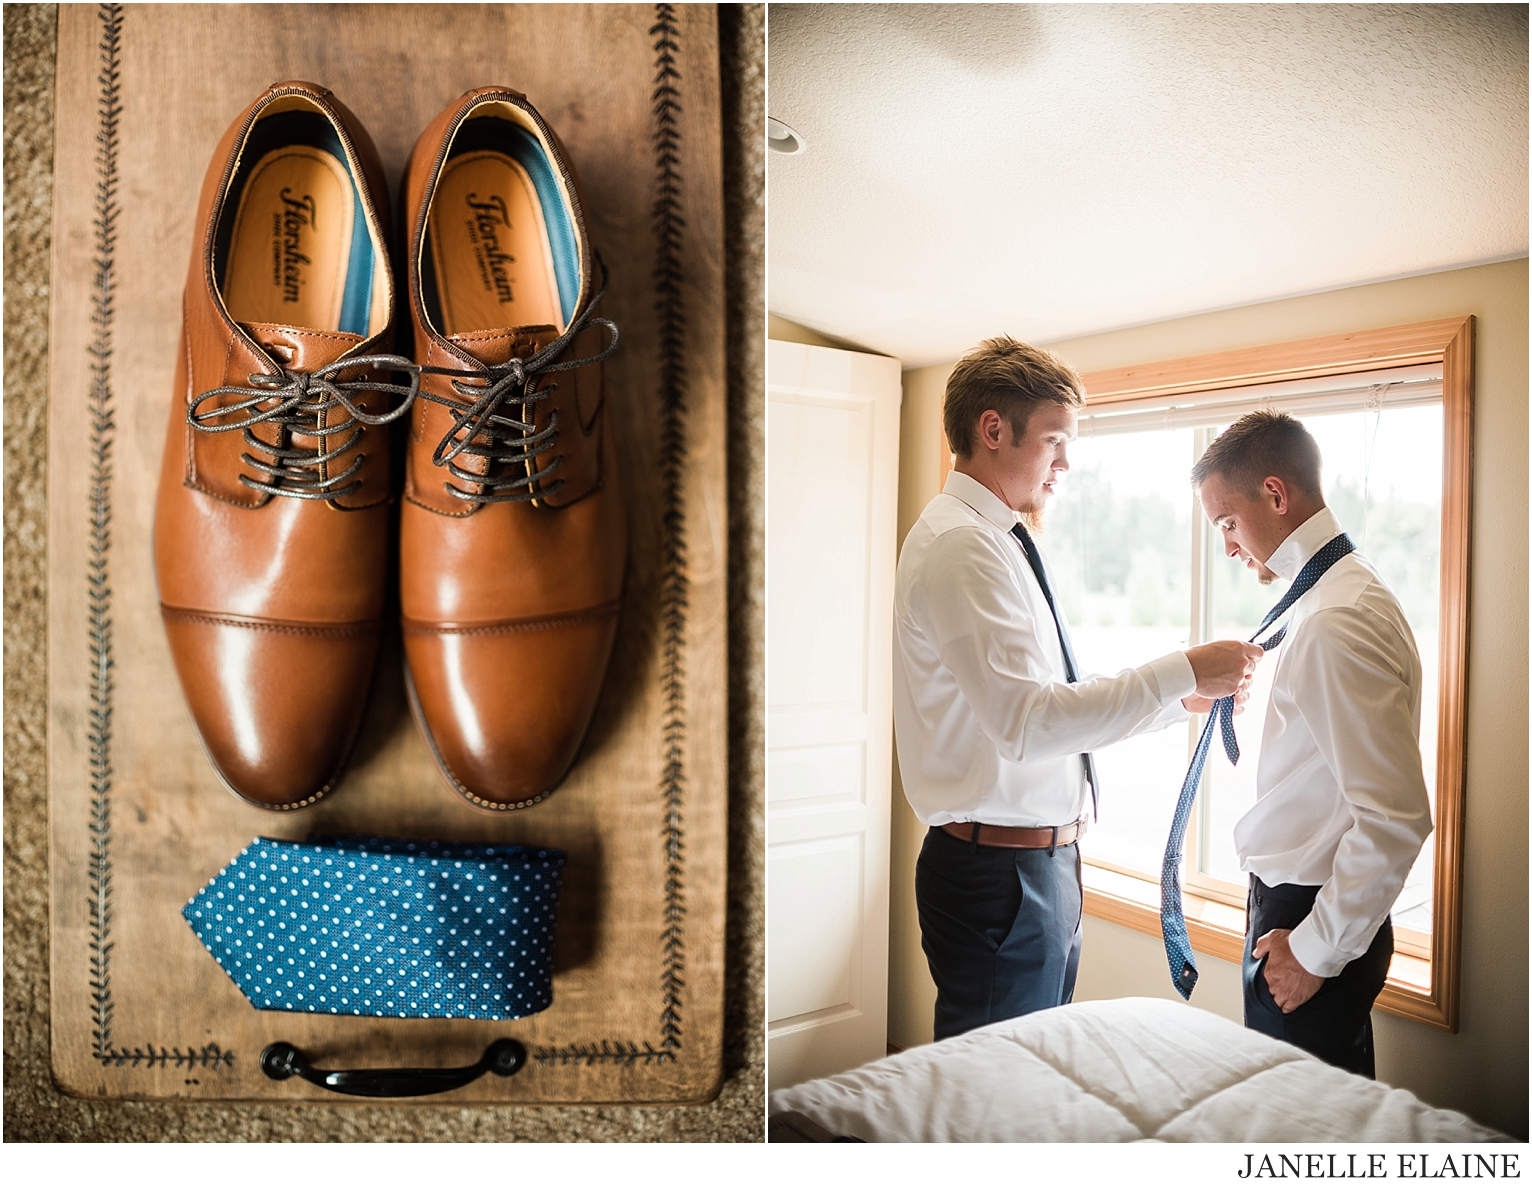 Tricia and Nathan Goddard Wedding-Getting Ready Photos-Janelle Elaine Photography-52.jpg